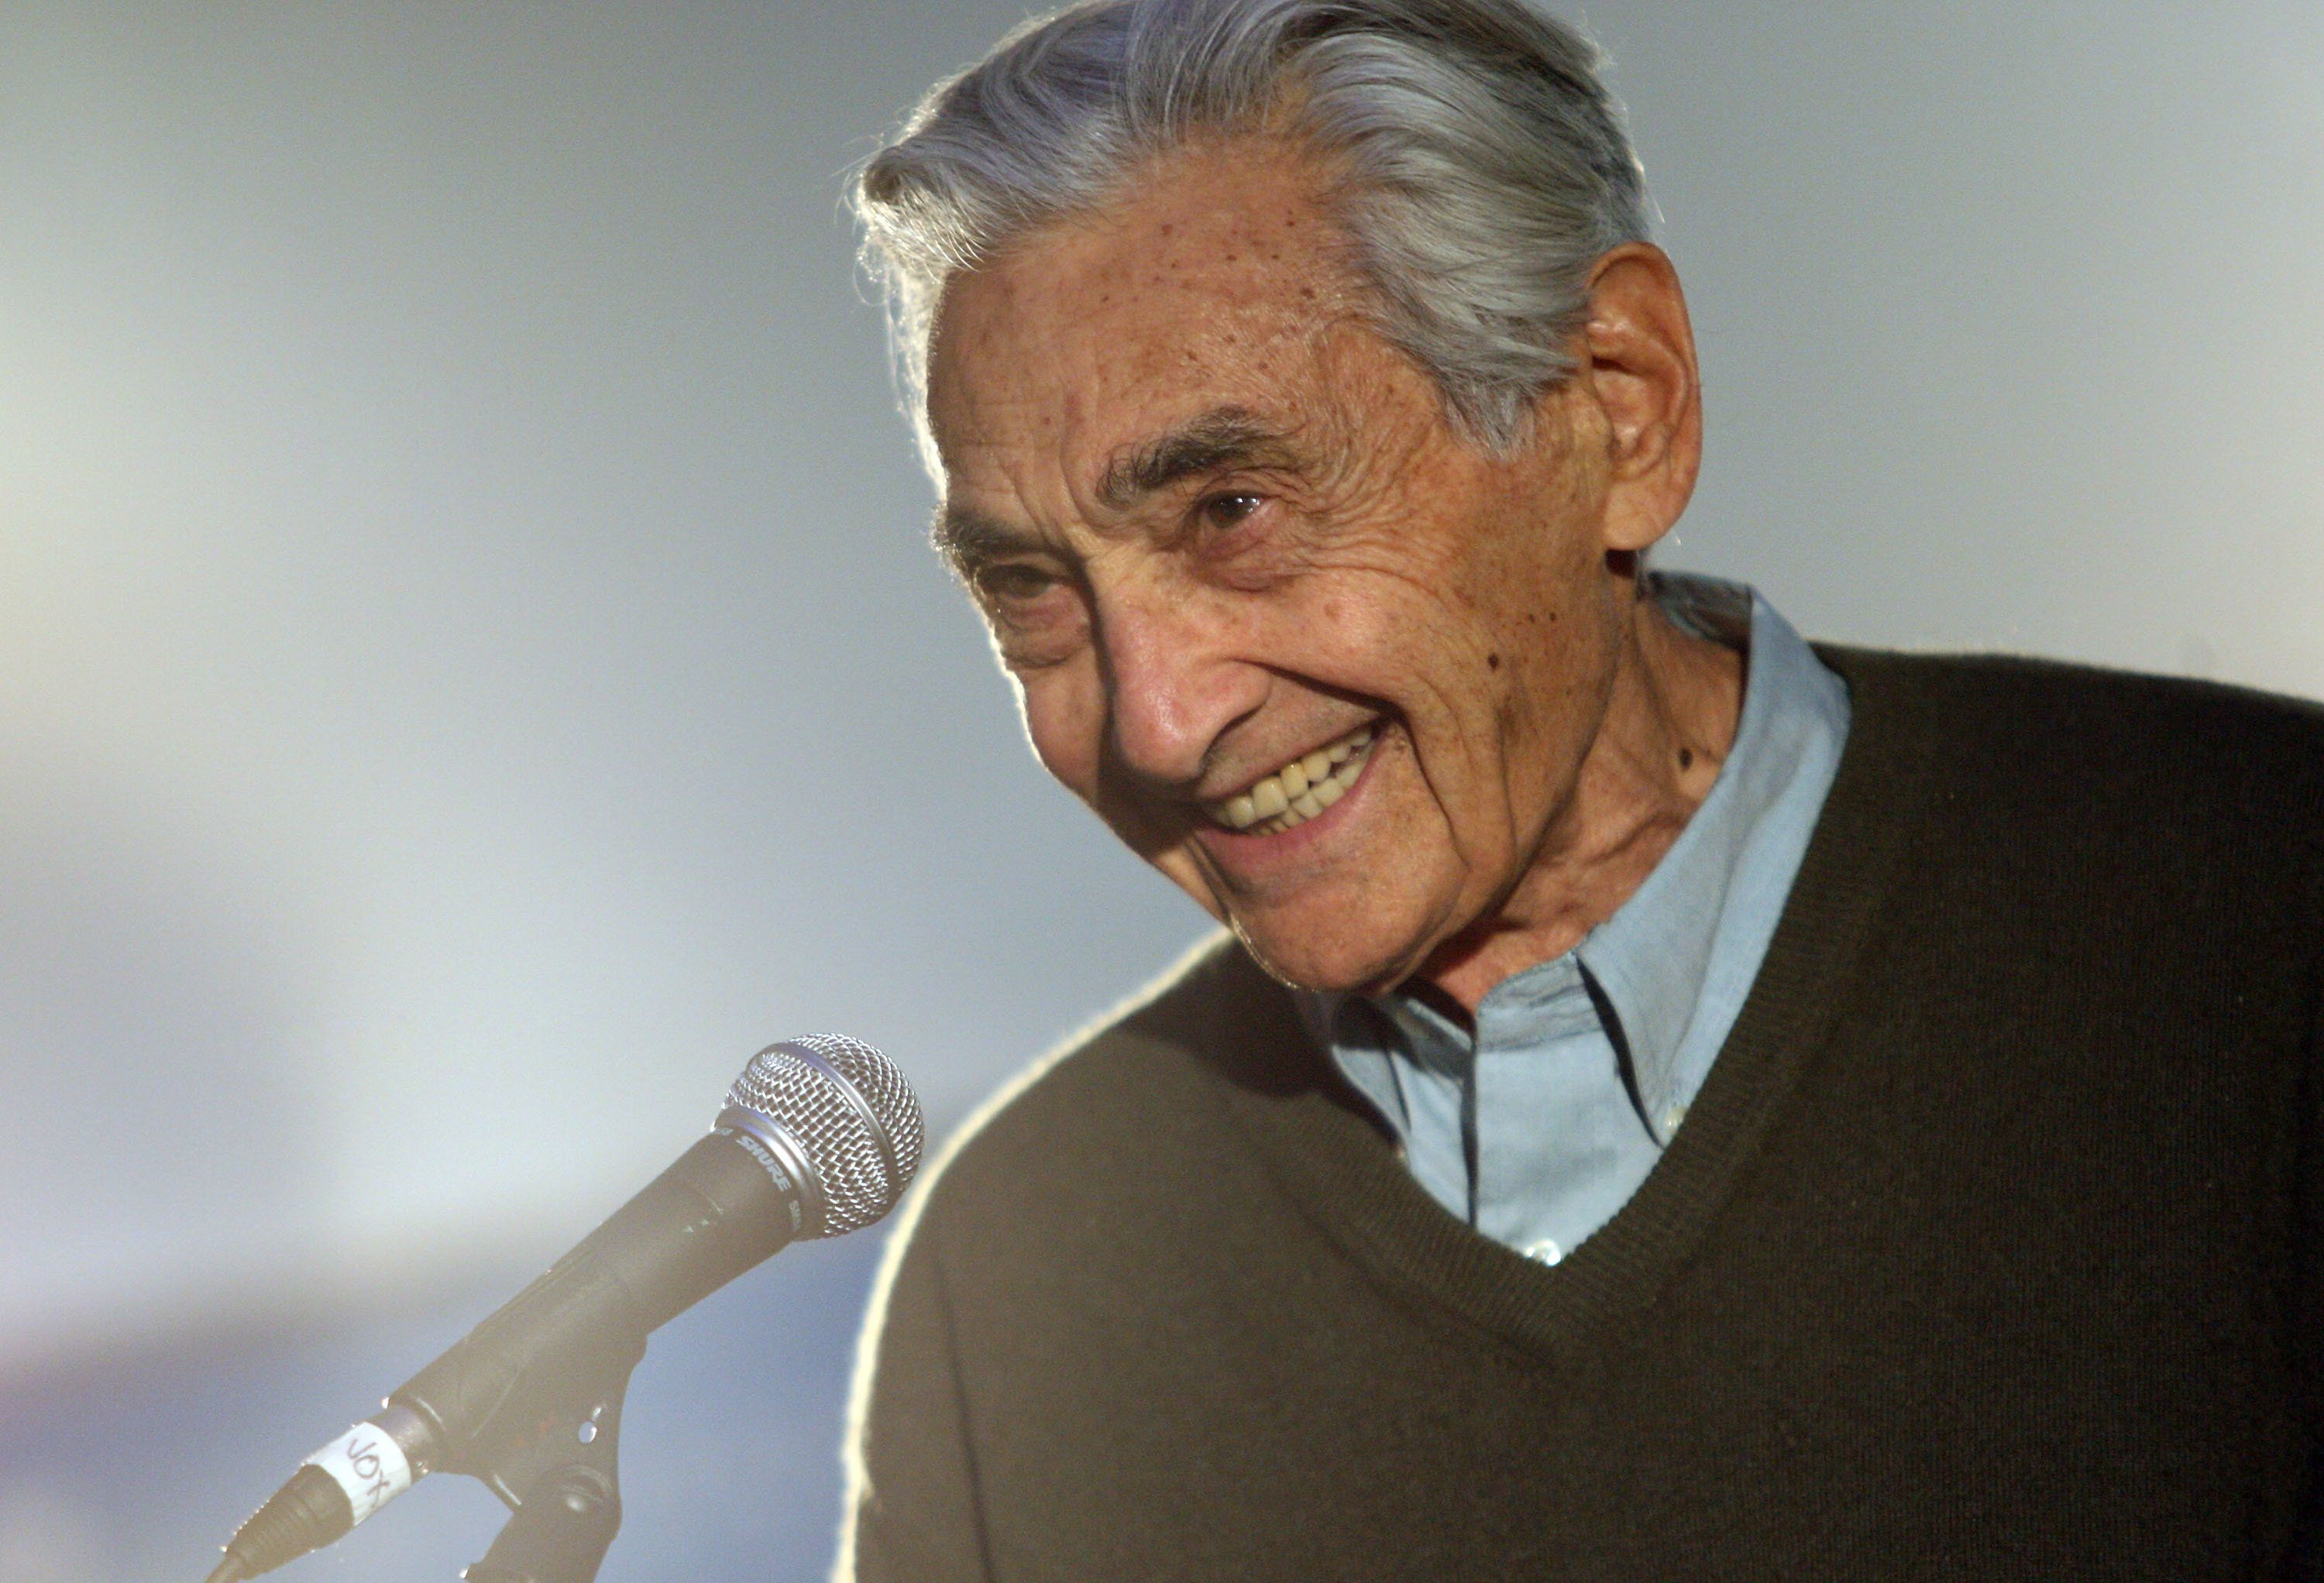 PARK CITY, UT - JANUARY 22:  Author Howard Zinn speaks during the People Speak ASCAP Music Cafe performance held during the 2009 Sundance Music Festival on January 22, 2009 in Park City, Utah.  (Photo by Bryan Bedder/Getty Images)